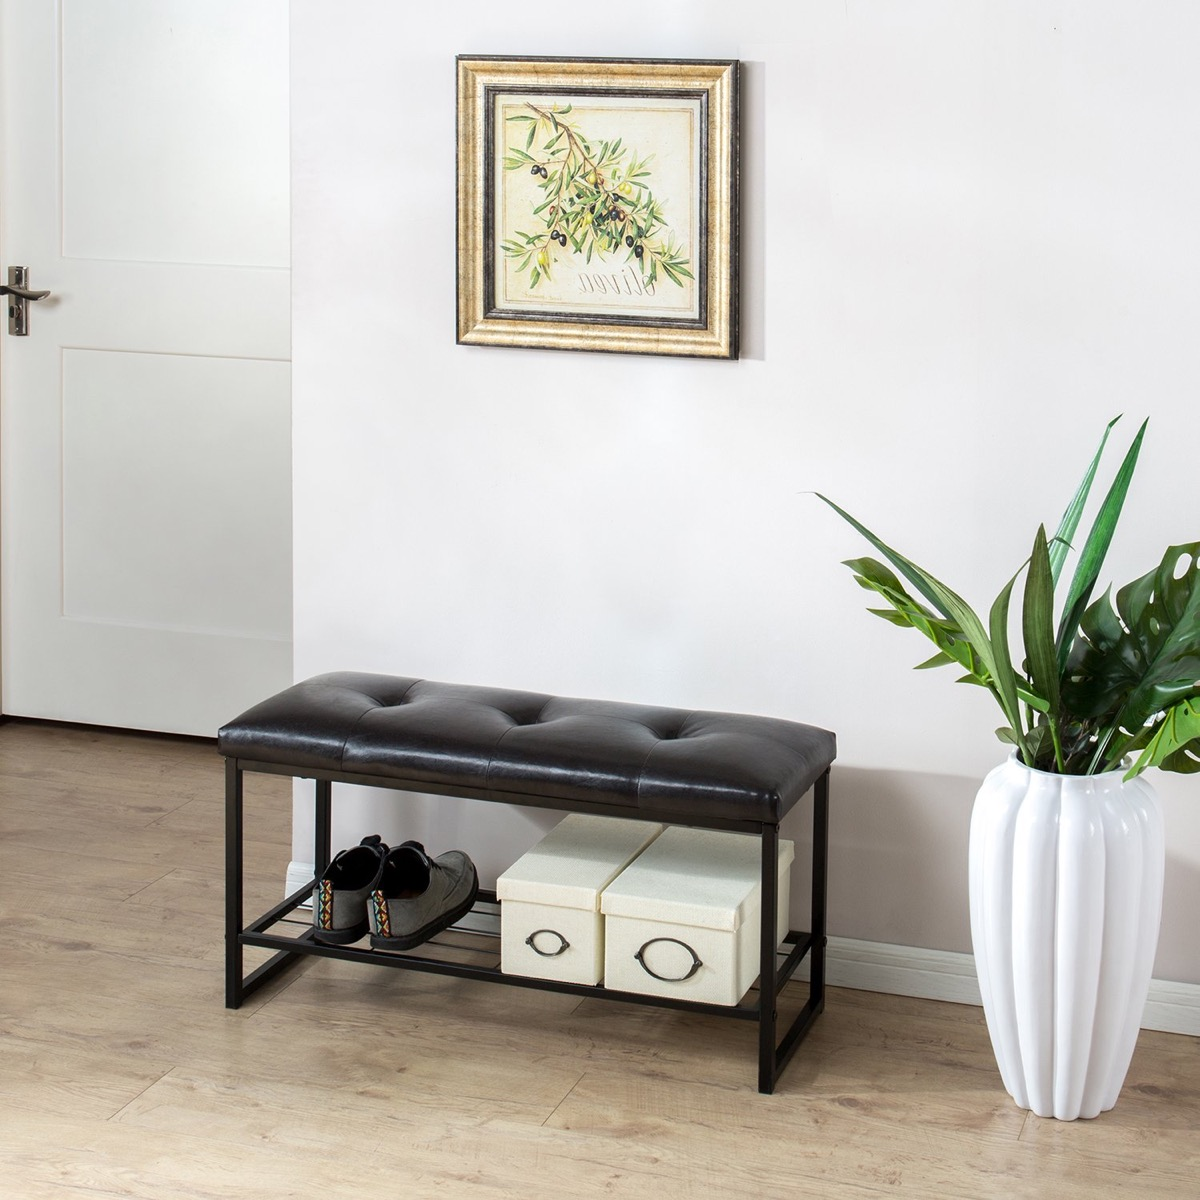 Tufted-36-Inch-Entryway-Bench-With-Storage-Shelf-Black-Metal-Frame-And-Faux-Leather-Cushion